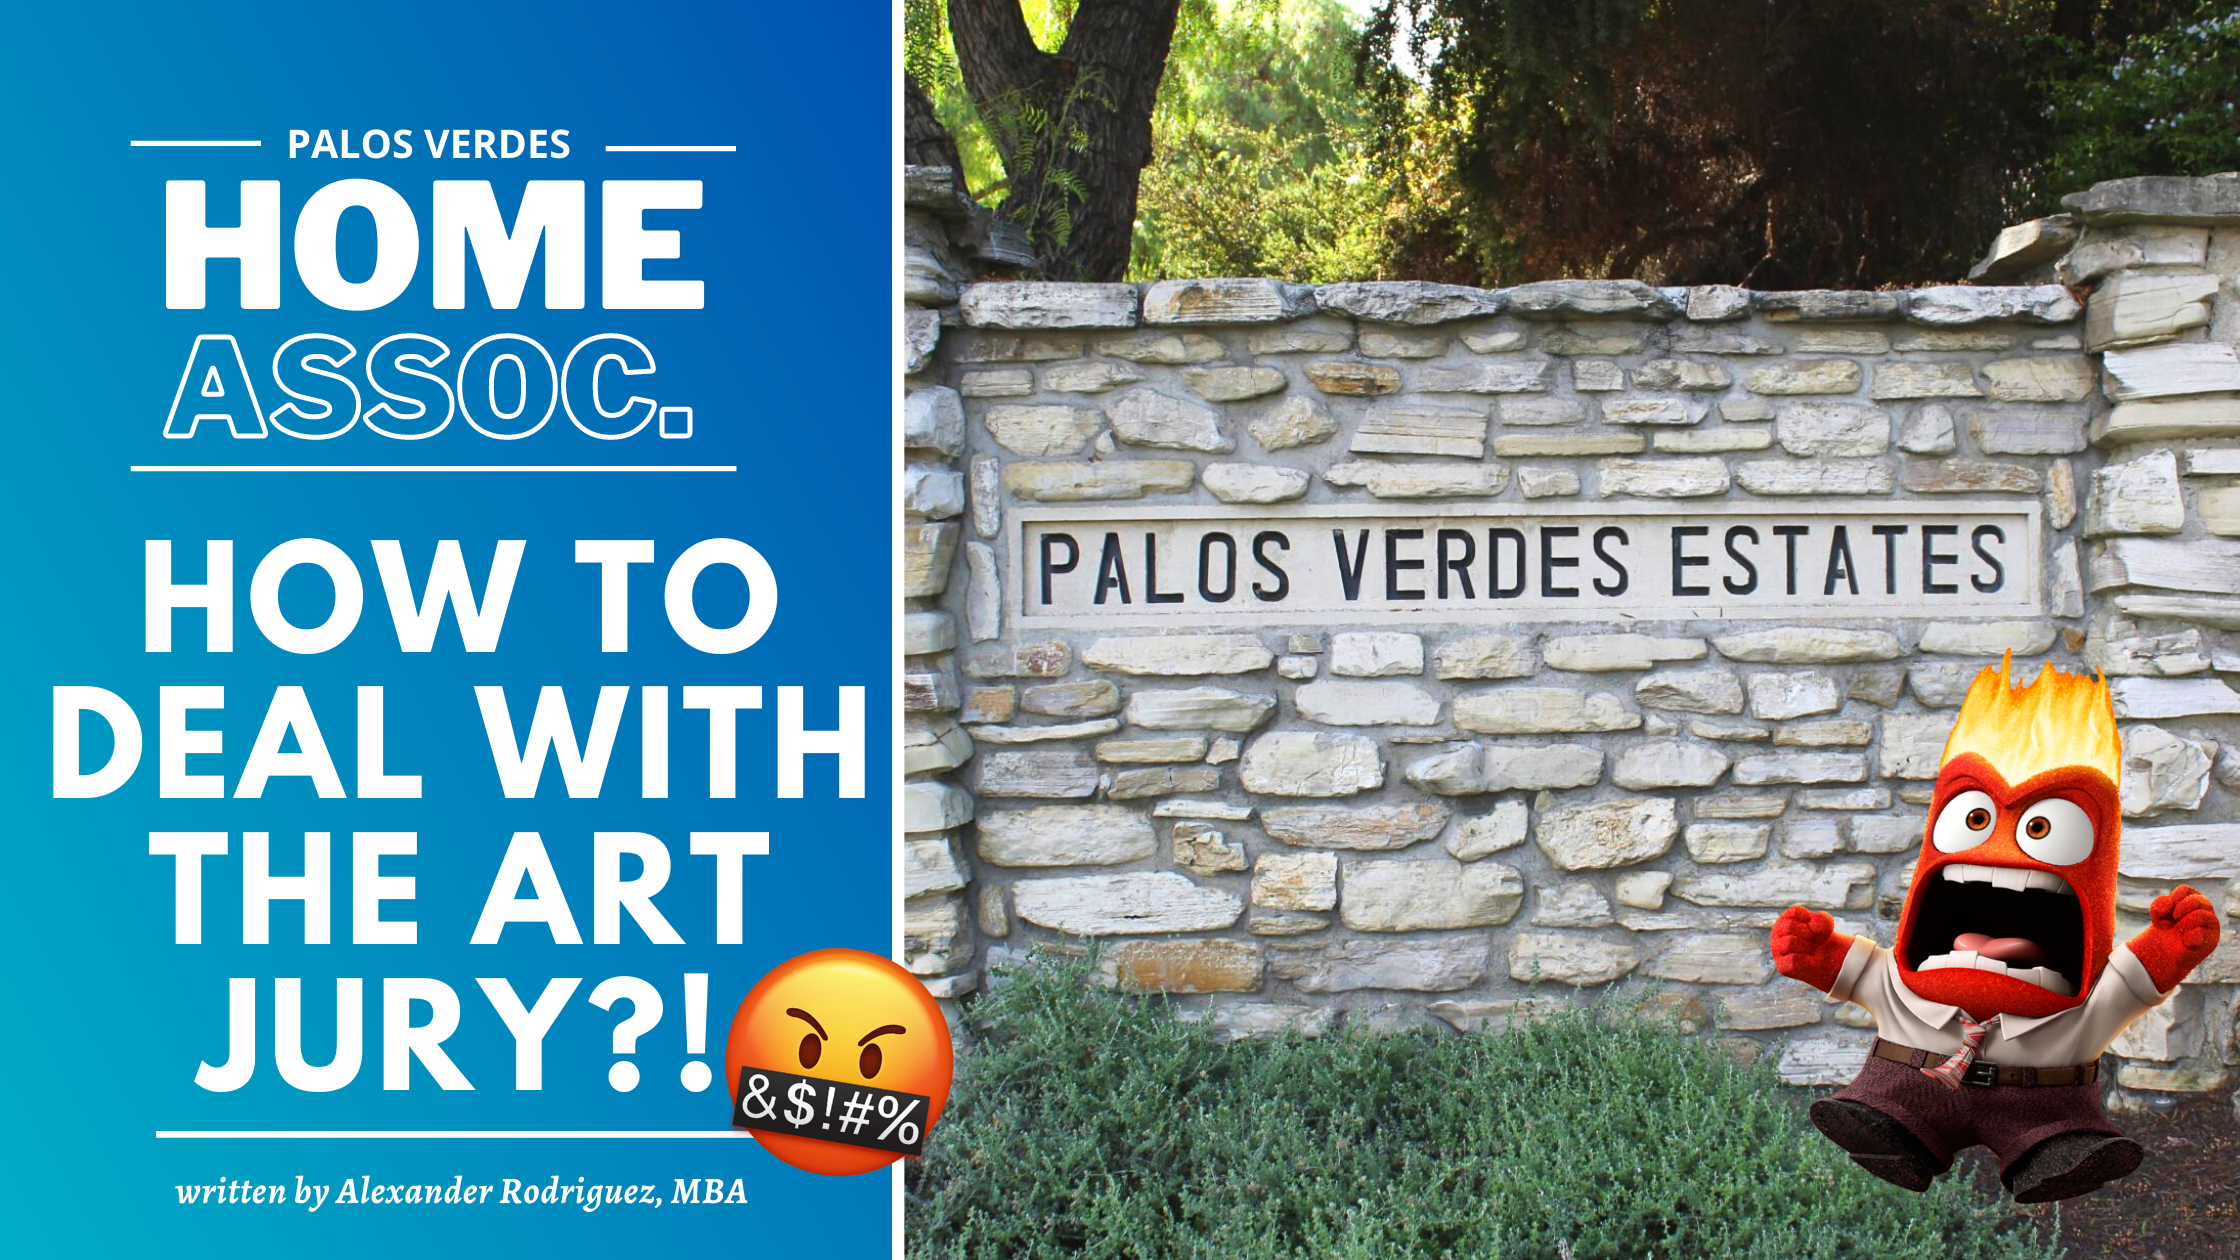 How to Pull Permits and Deal with the Palos Verdes Estates Art Jury